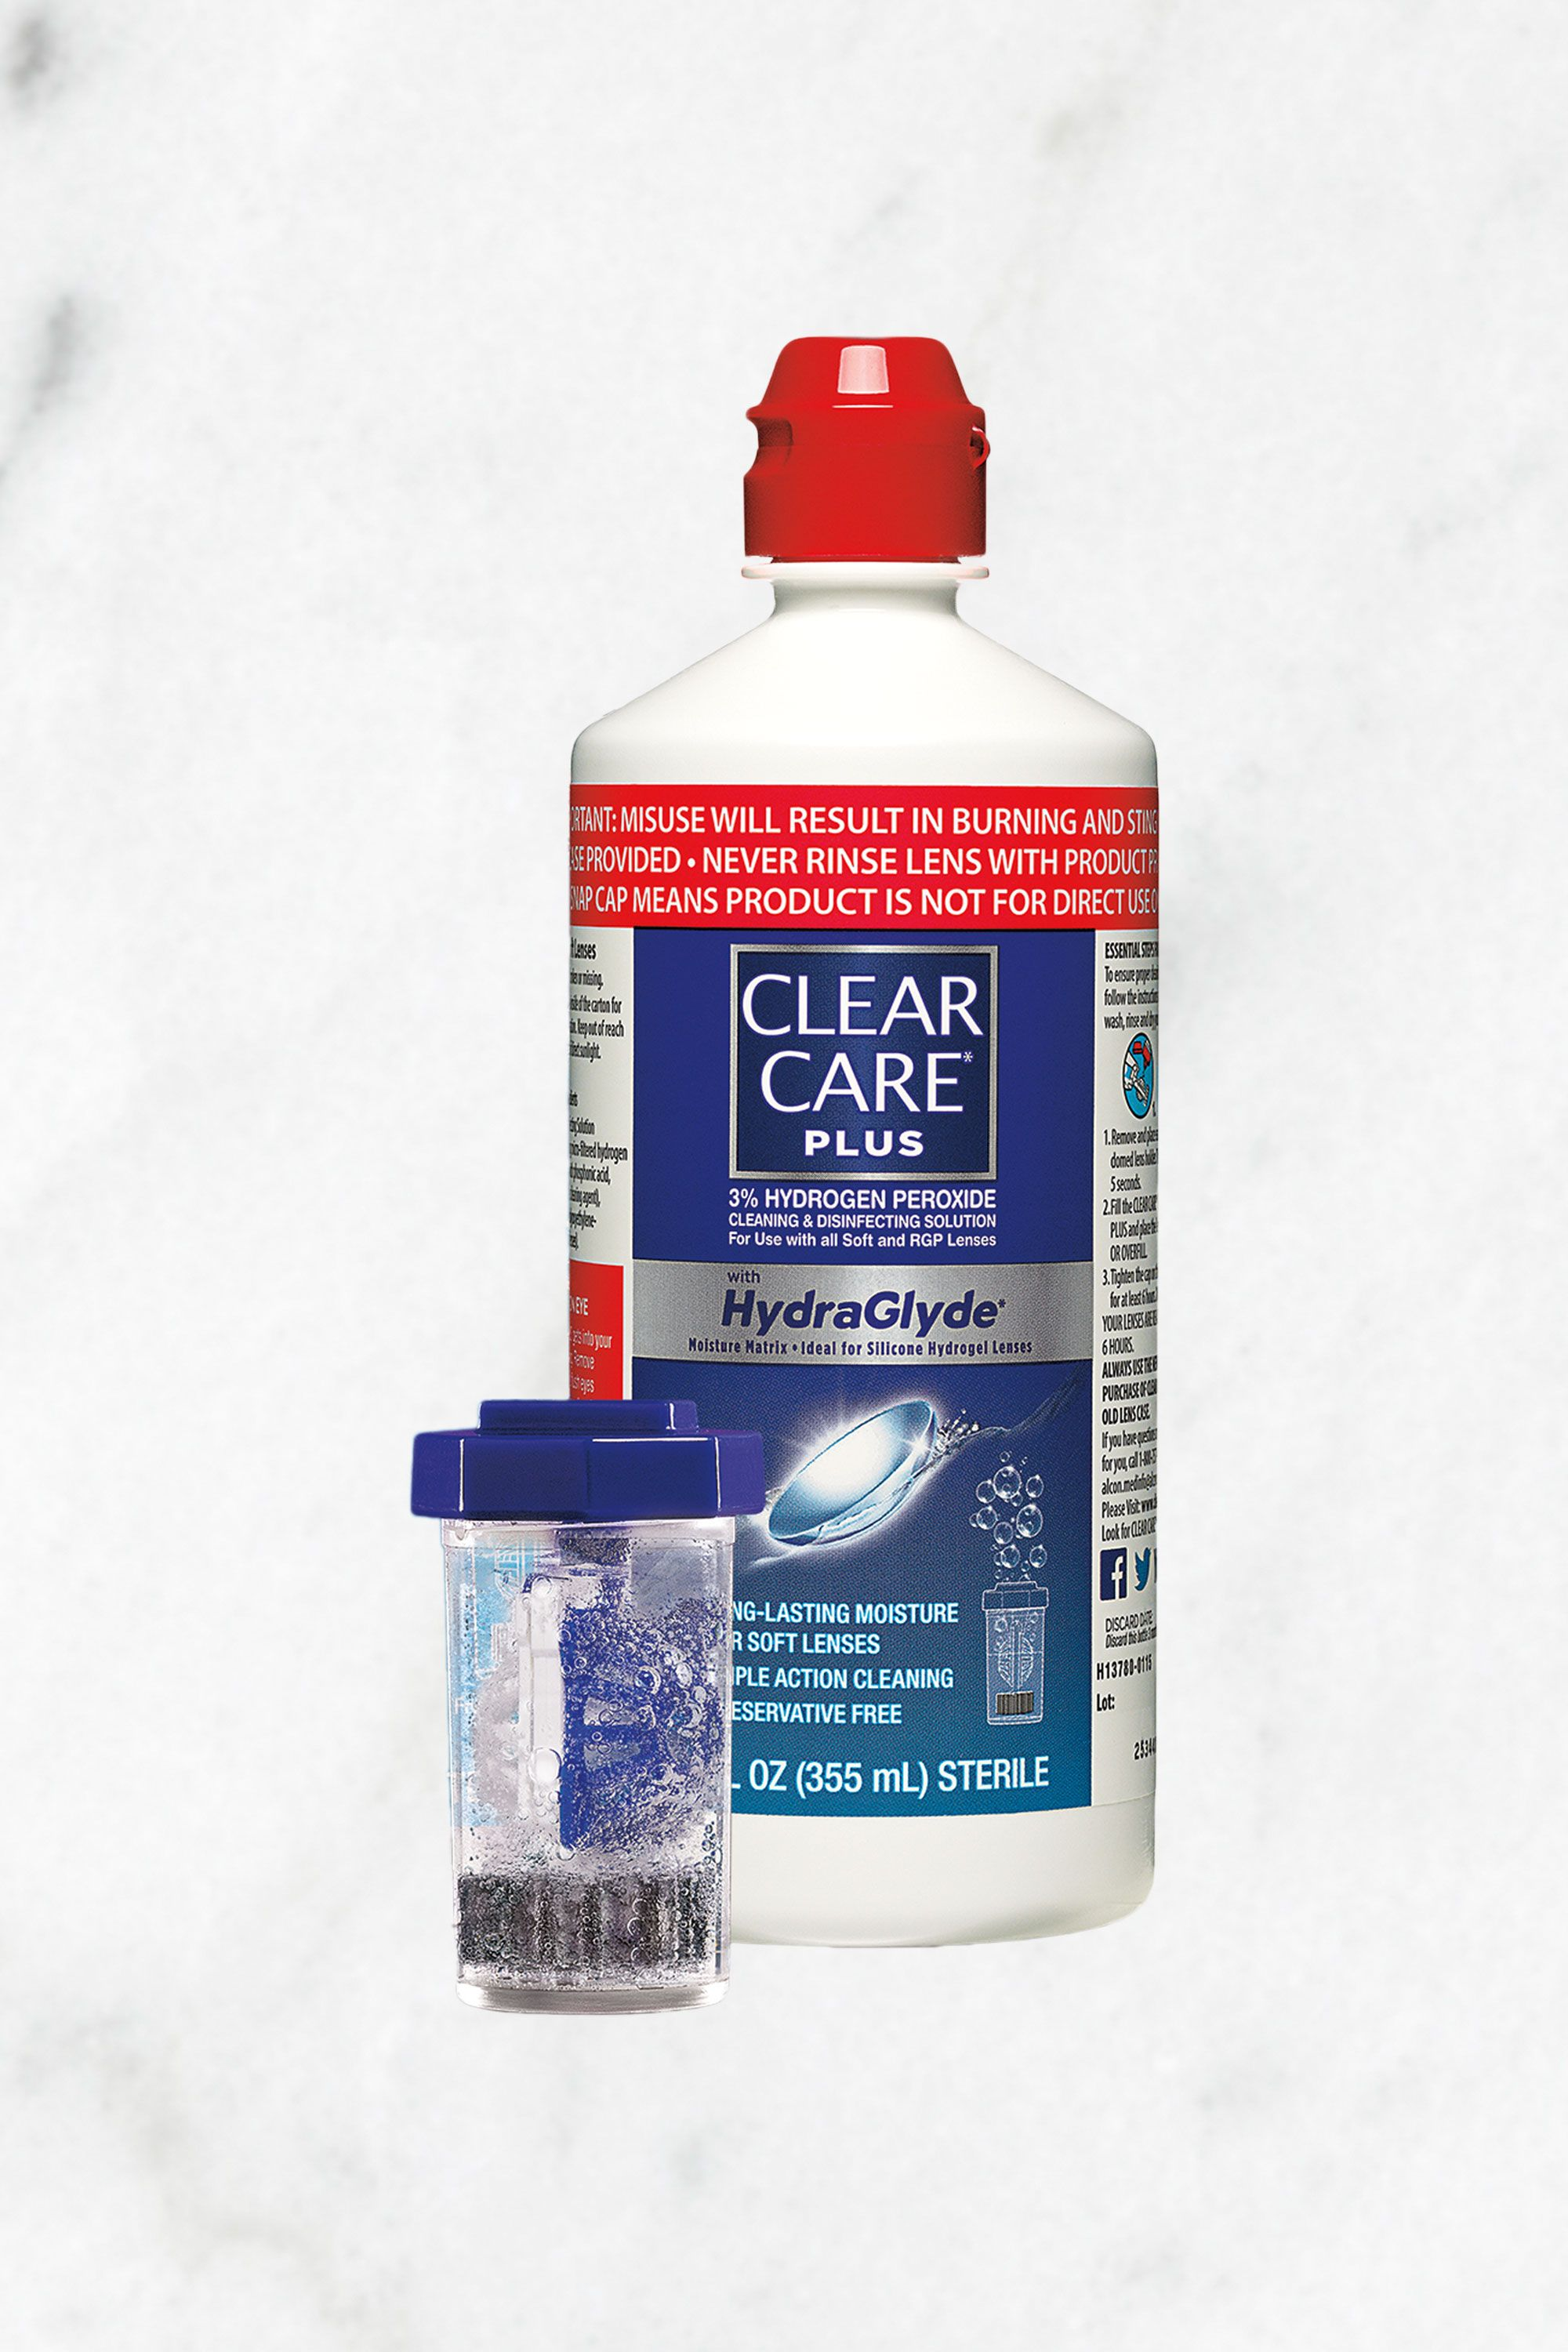 "<p>This solution disinfects dirty lenses overnight, leaving contacts crystal clear, hydrated, and feeling fresh, like new. Even better: The clear case and hydrogen peroxide-powered bubbles are actually kind of pretty. </p><p><em data-redactor-tag=""em"">        CLEAR CARE® PLUS <span class=""redactor-invisible-space"" data-verified=""redactor"" data-redactor-tag=""span"" data-redactor-class=""redactor-invisible-space""></span>Contact Lens Solution, $10; <a href=""http://www.target.com/p/contact-lens-solution/-/A-49132684?ref=tgt_adv_XS000000&AFID=google_pla_df&CPNG=PLA_Health+Beauty+Shopping&adgroup=SC_Health+Beauty&LID=700000001170770pgs&network=s&device=c&location=1023191&gclid=CJOY_MPwnNMCFQiHaQodGzMP-g&gclsrc=aw.ds"" target=""_blank"">target.com</a></em></p>"